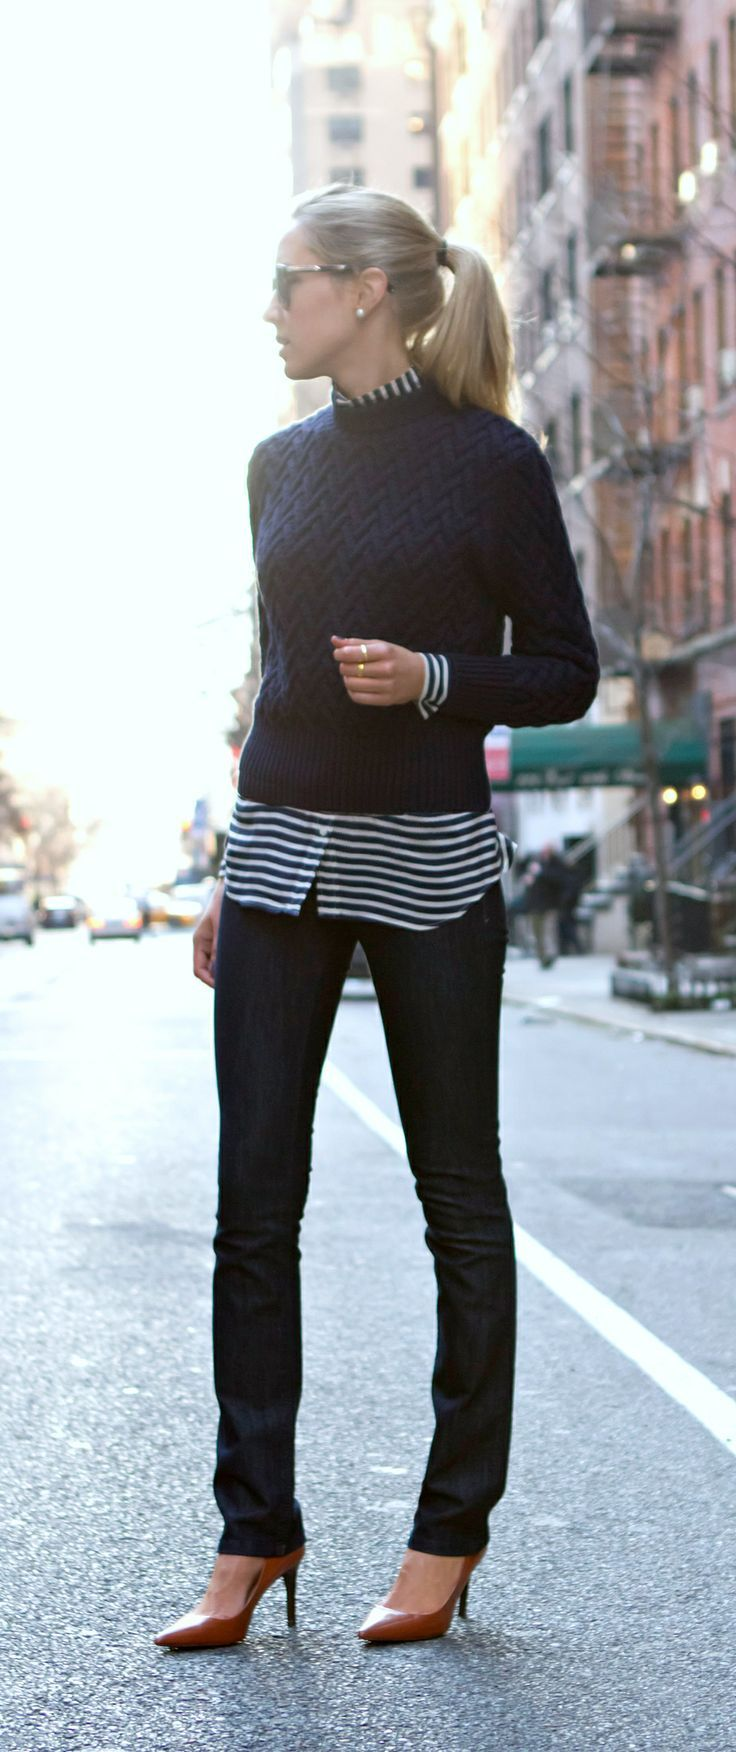 15 Fall Outfit Ideas With Sweater and Shirt - fashionsy.com